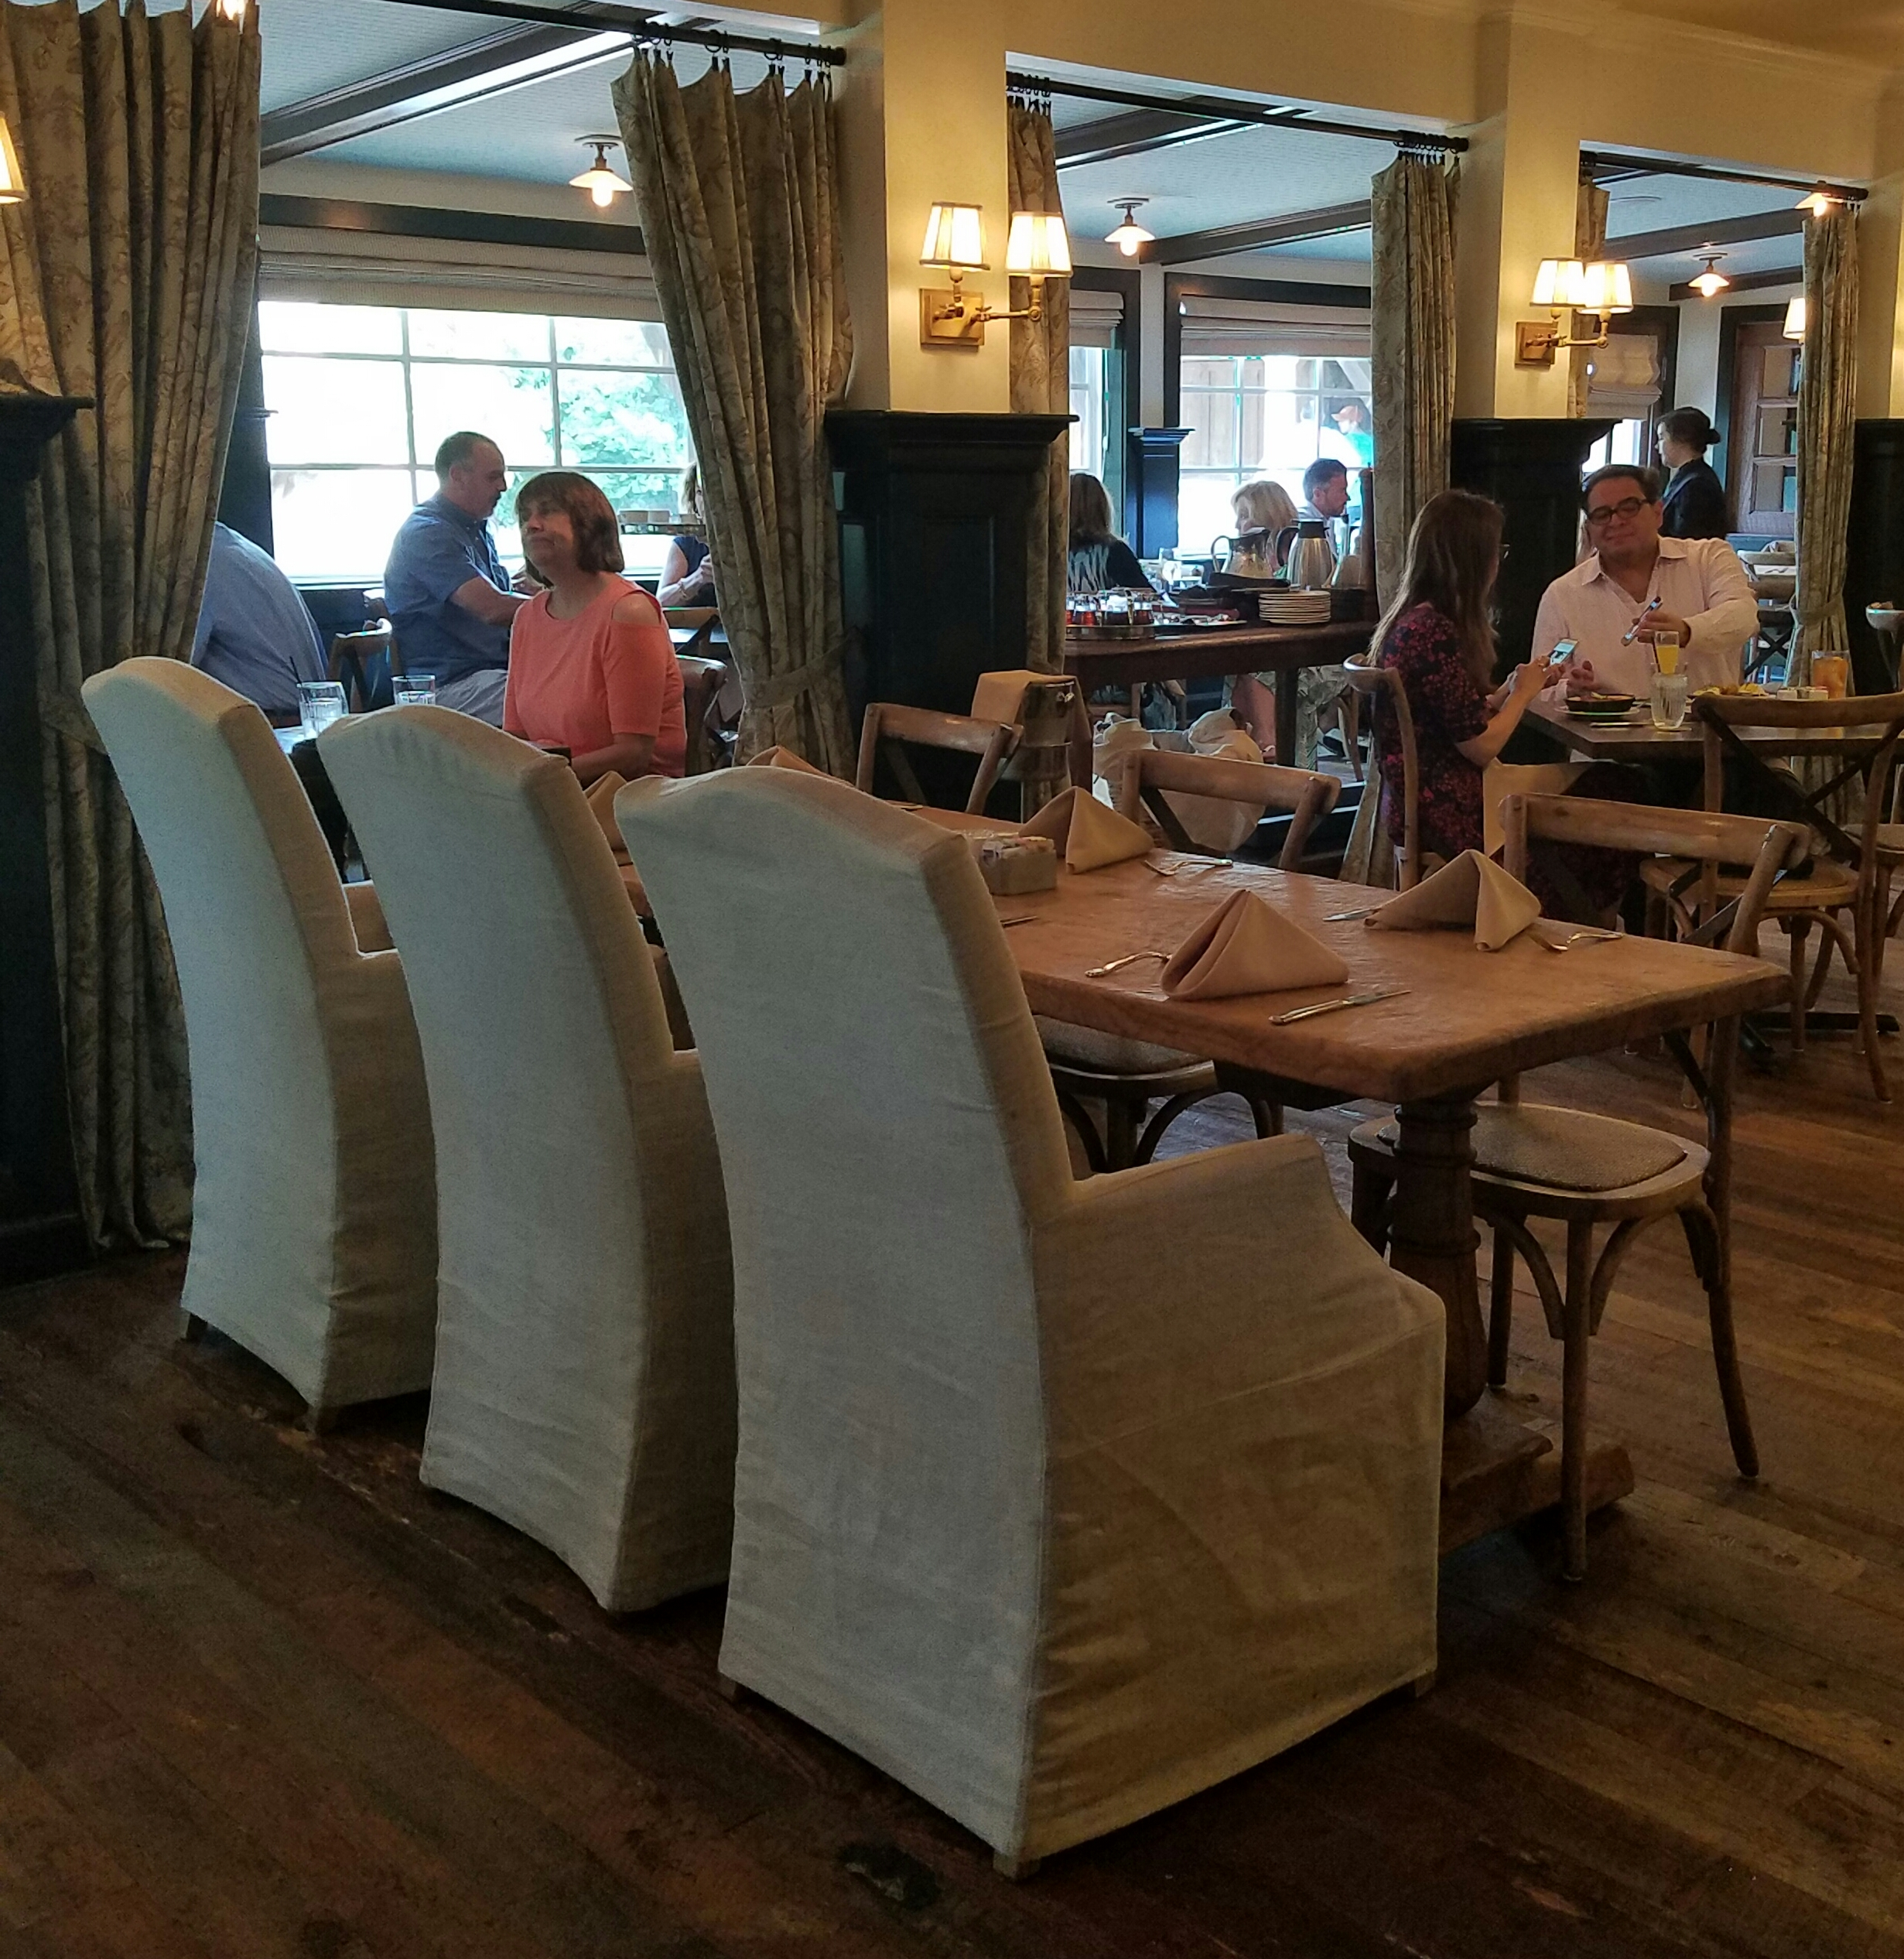 Boerne – Brunch at Peggy's on the Green